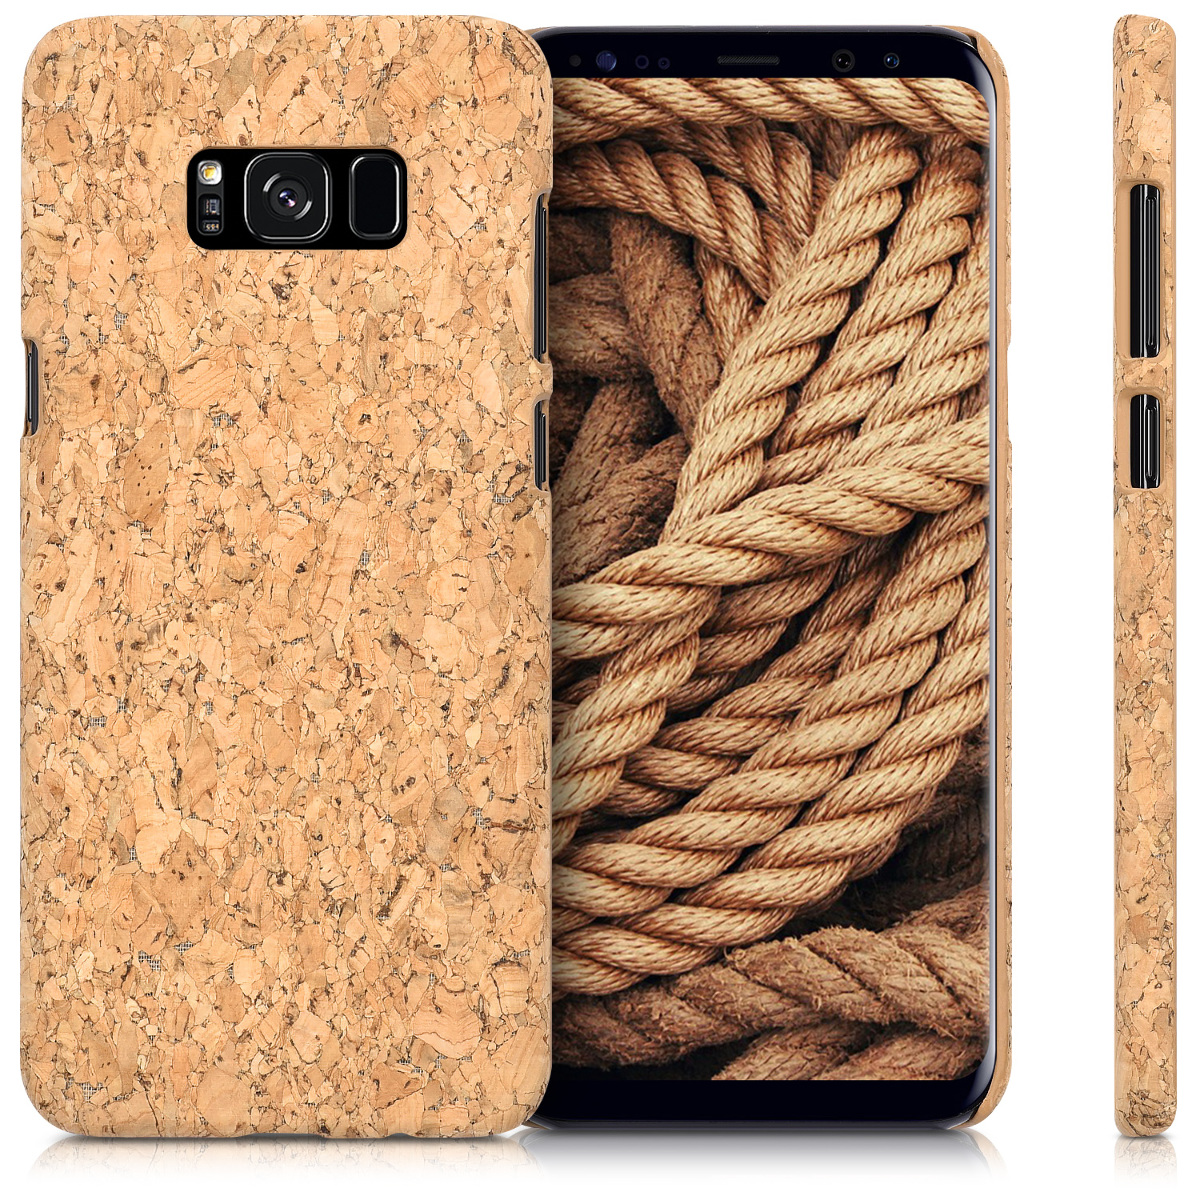 FUNDA-TRASERA-DE-CORCHO-NATURAL-PARA-SAMSUNG-GALAXY-S8-PLUS